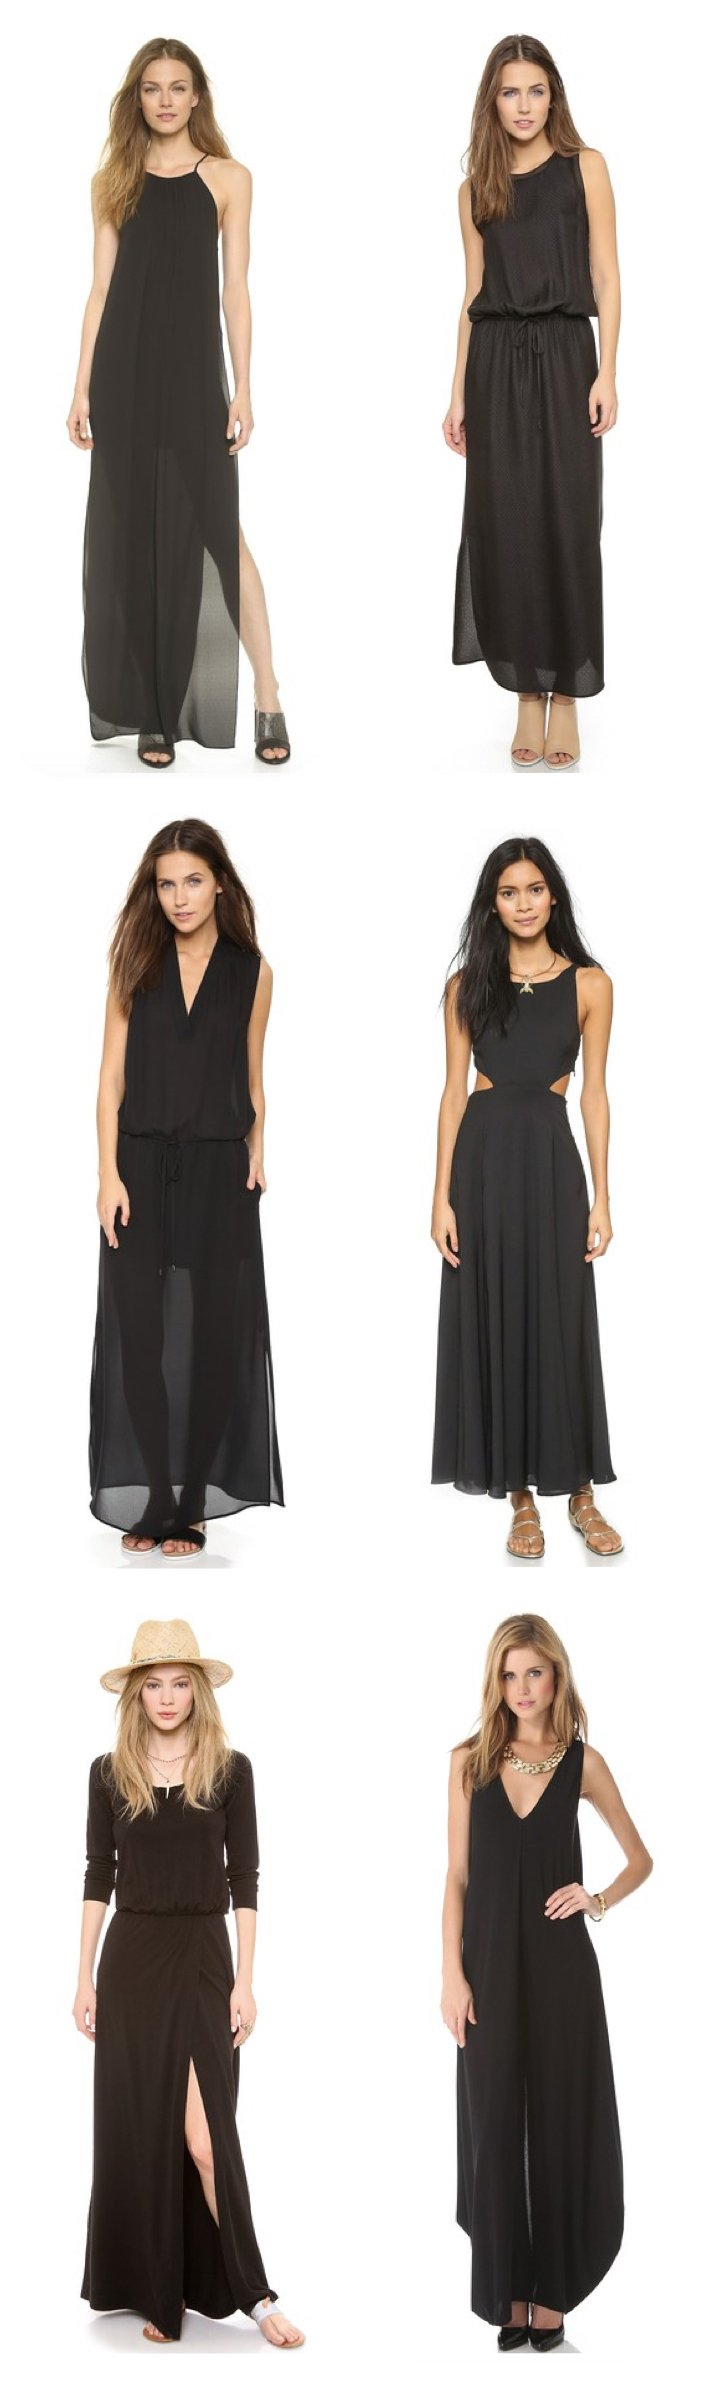 Classic Black Maxi Dresses, What to Wear to a Taylor Swift Dinner Party (or any Dinner Party!)